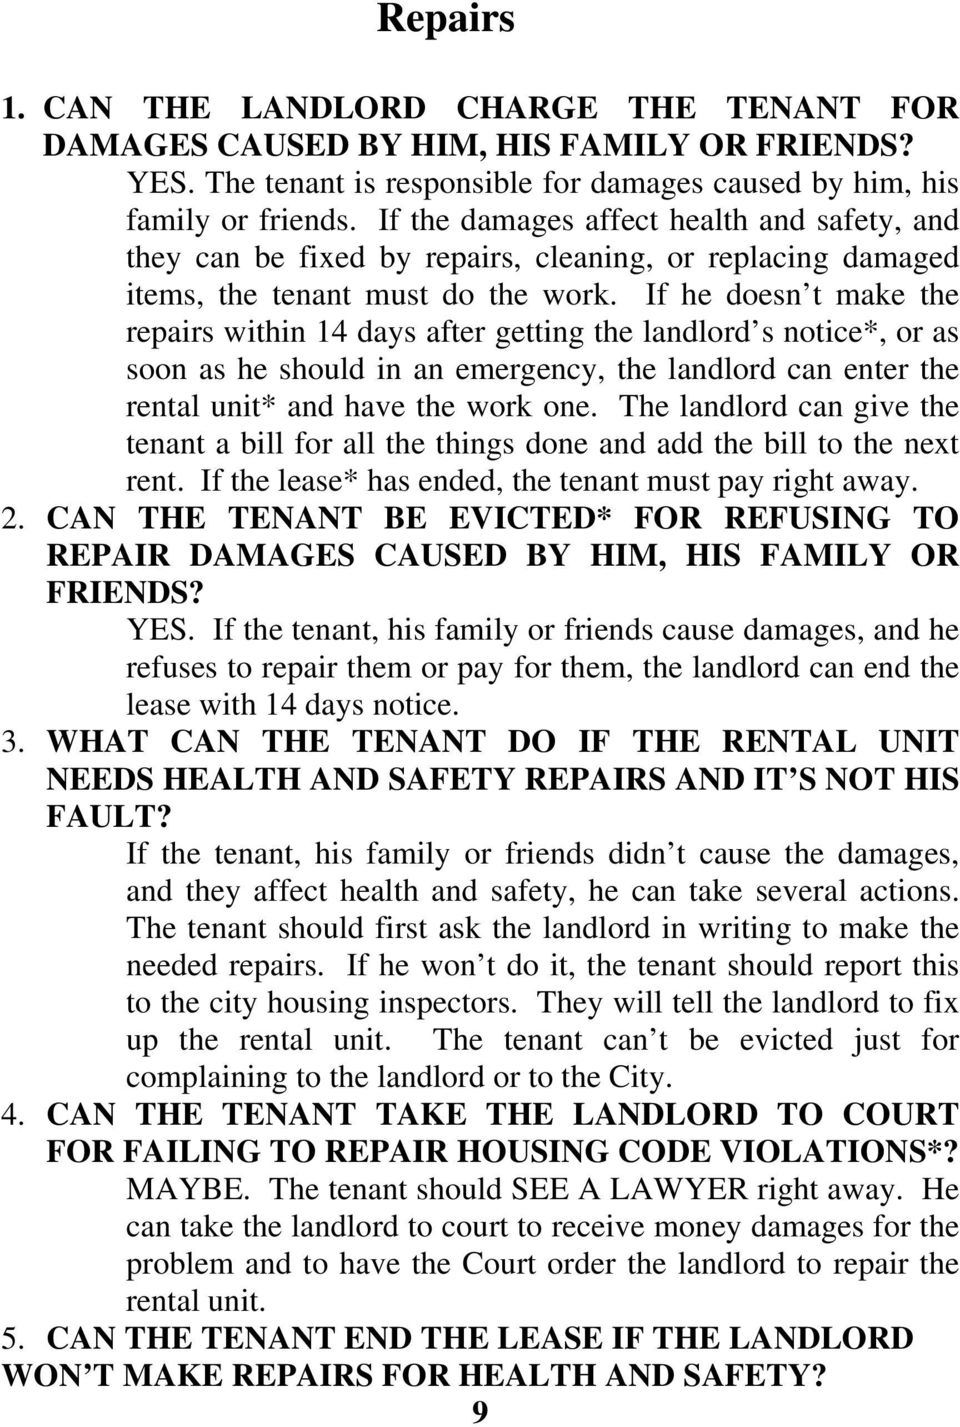 If he doesn t make the repairs within 14 days after getting the landlord s notice*, or as soon as he should in an emergency, the landlord can enter the rental unit* and have the work one.